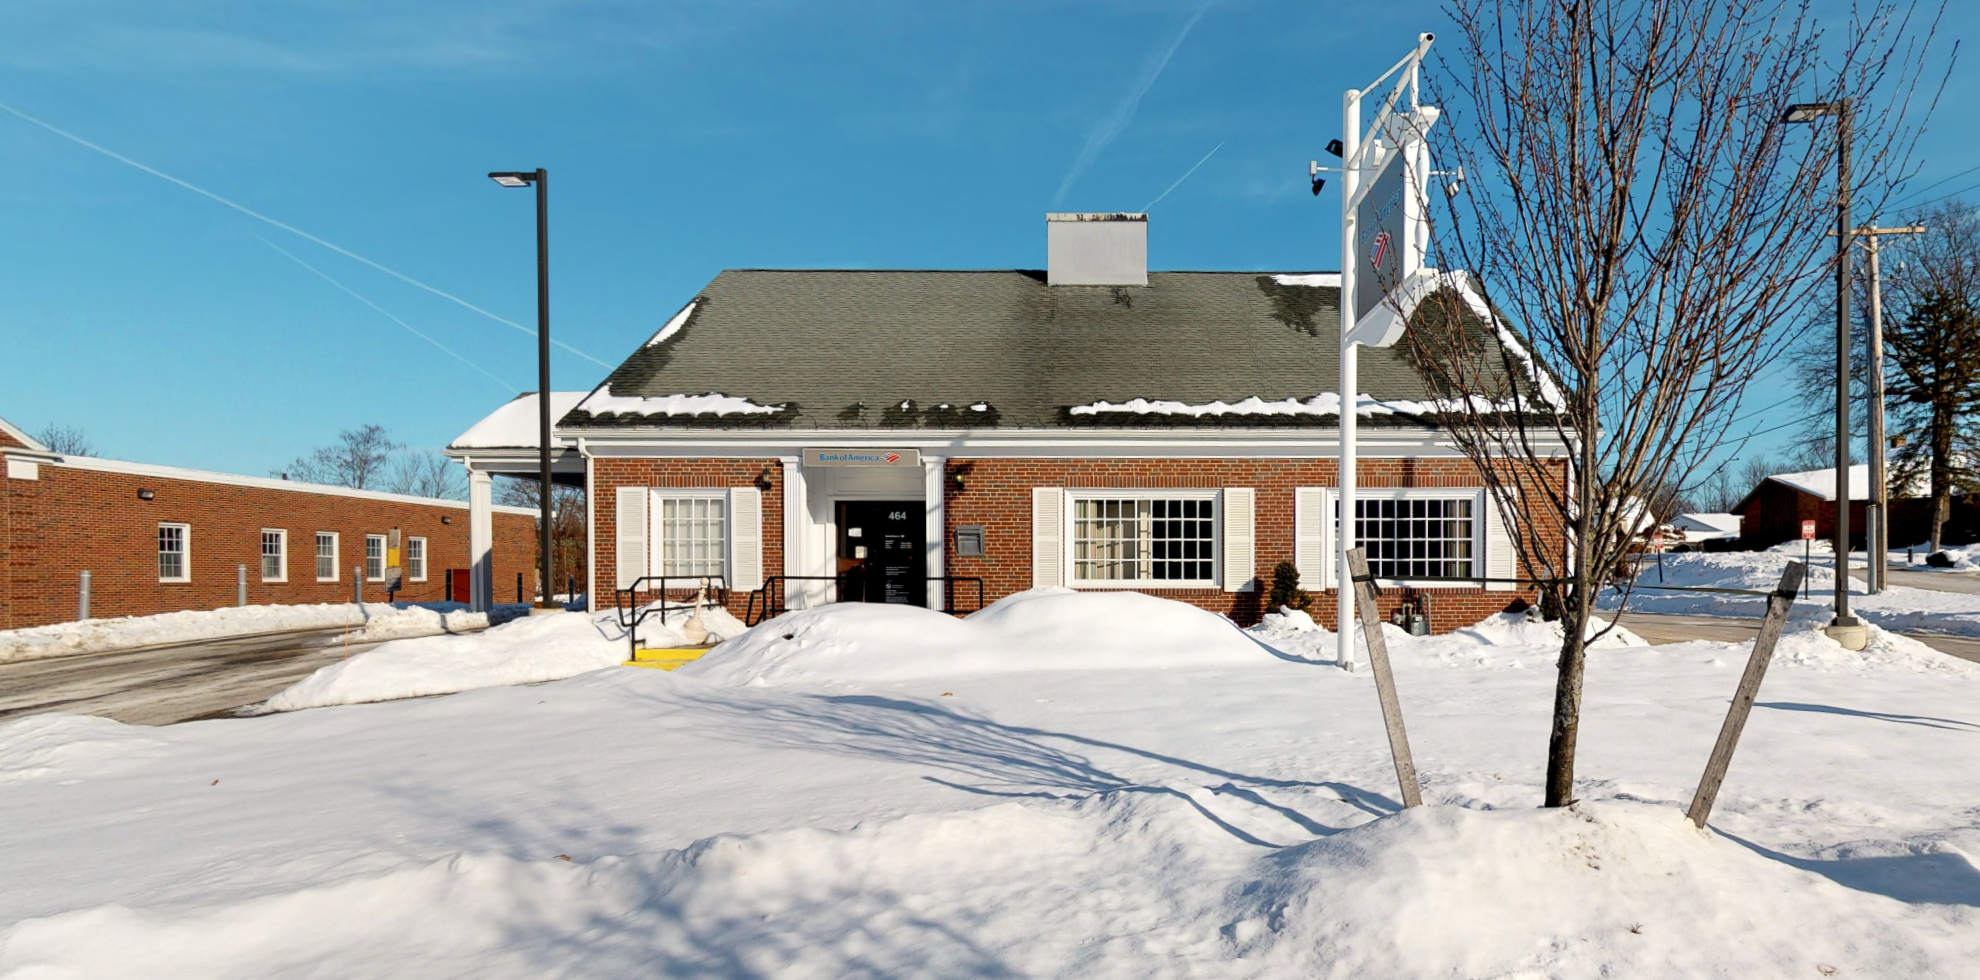 Bank of America financial center with drive-thru ATM   464 Boston Rd, Billerica, MA 01821